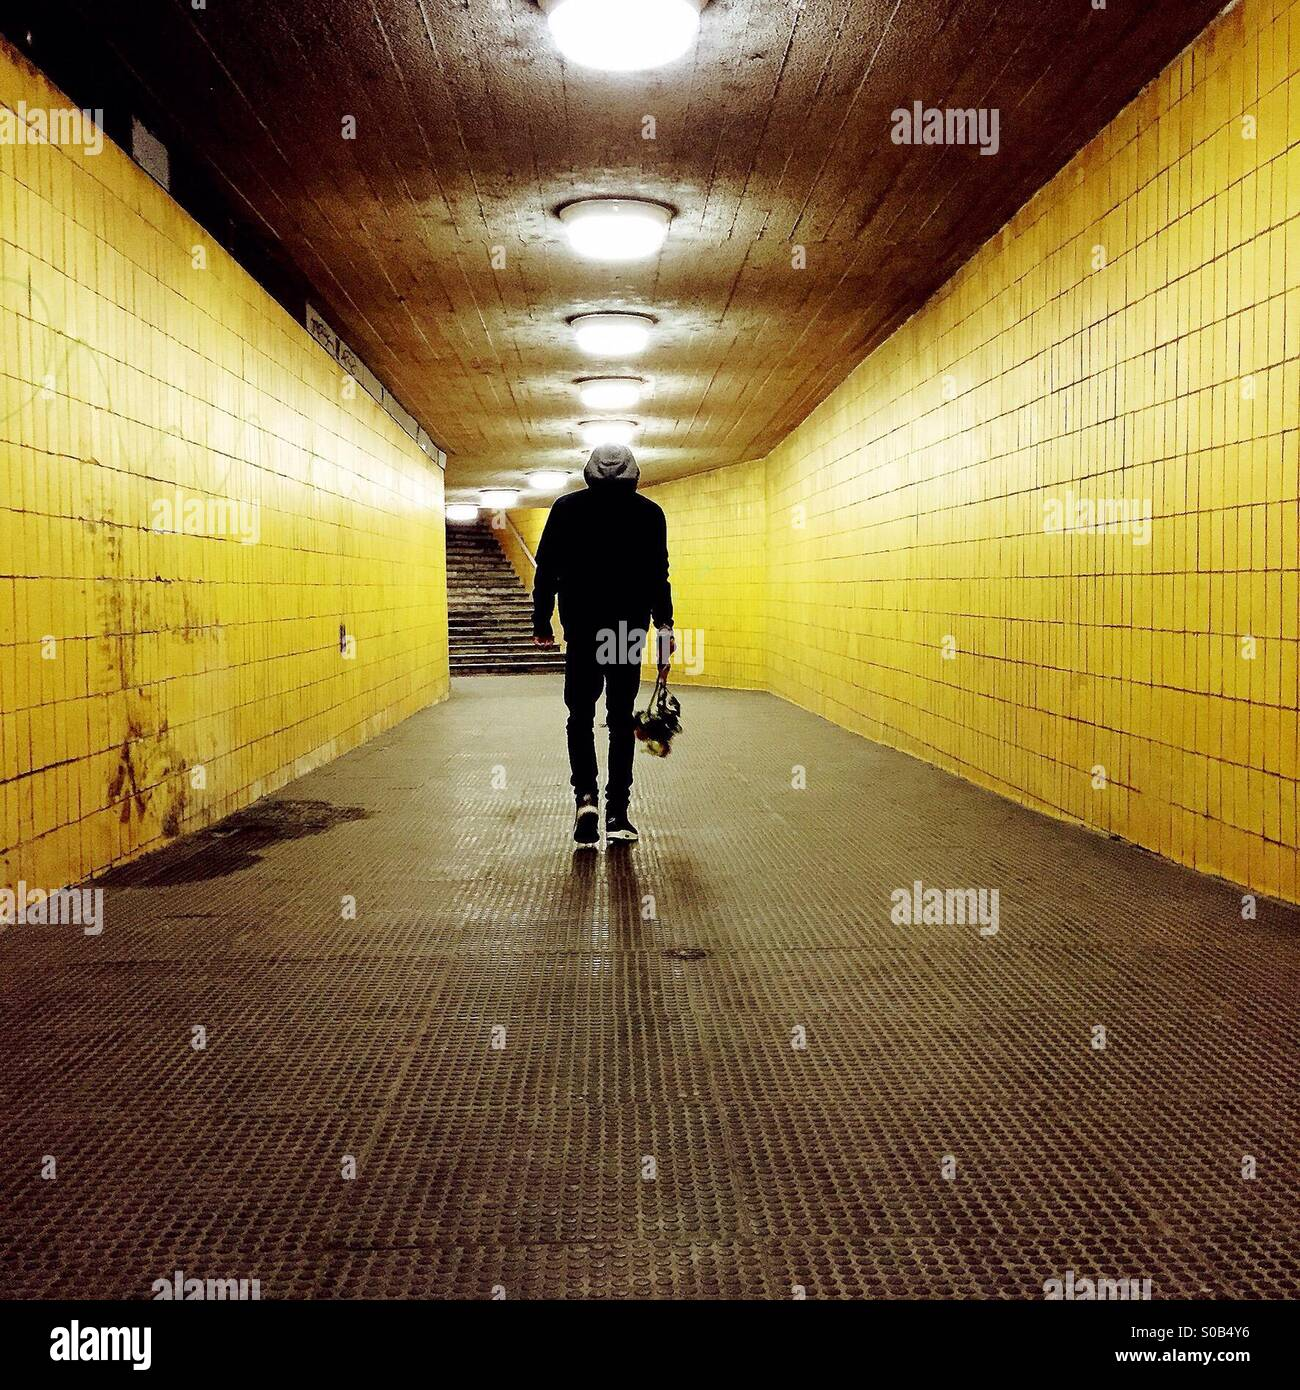 Young man walking under a yellow tunnel - Stock Image